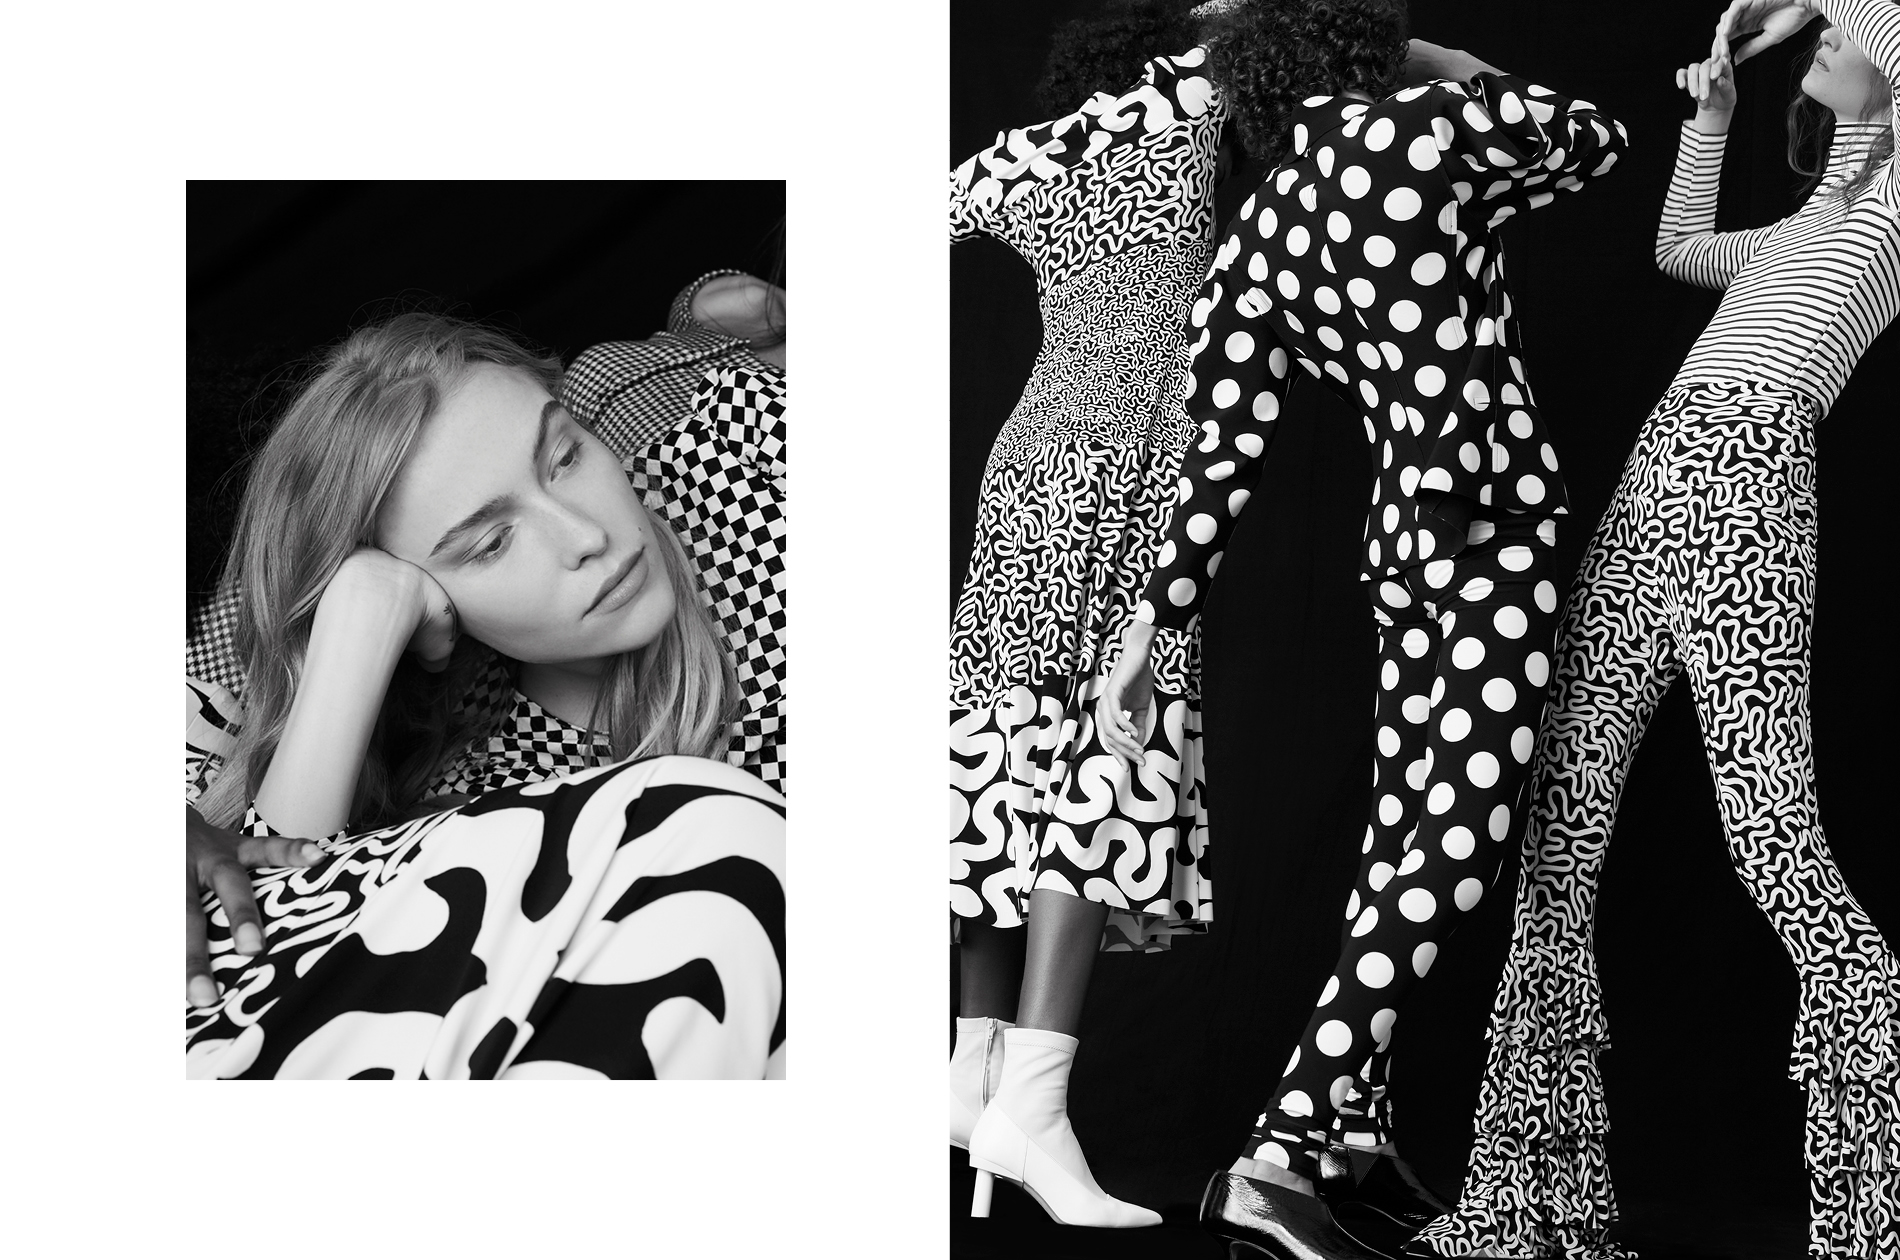 Black and white photos of models showcasing clothes from a fashion line.